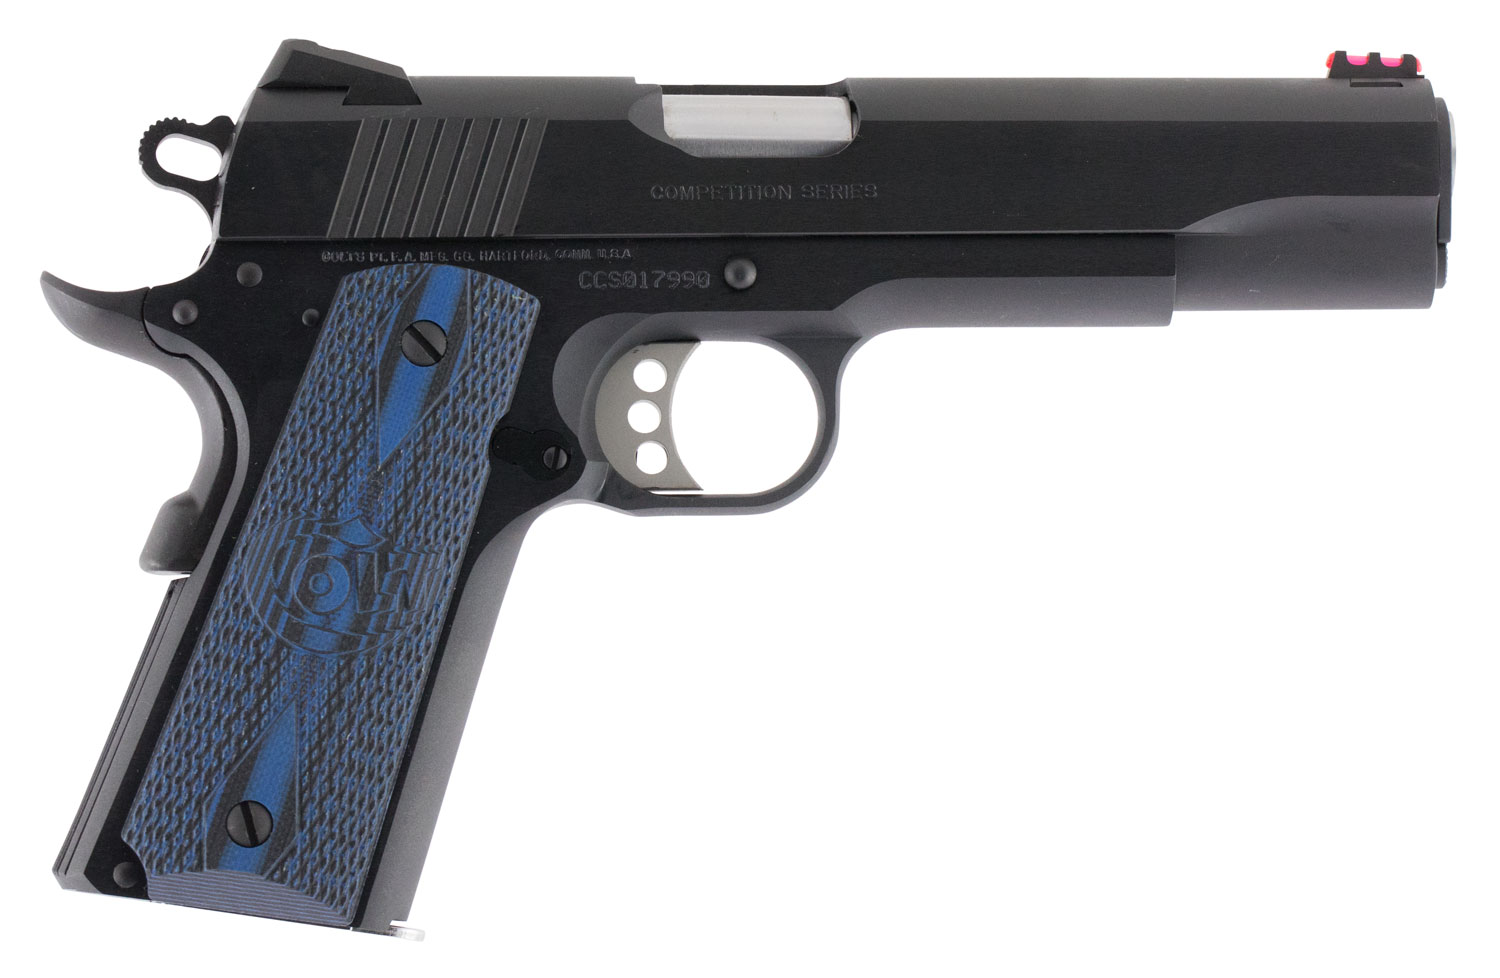 COMPETITION SER70 45ACP BL 8+1 - SERIES 70 COMPETITION